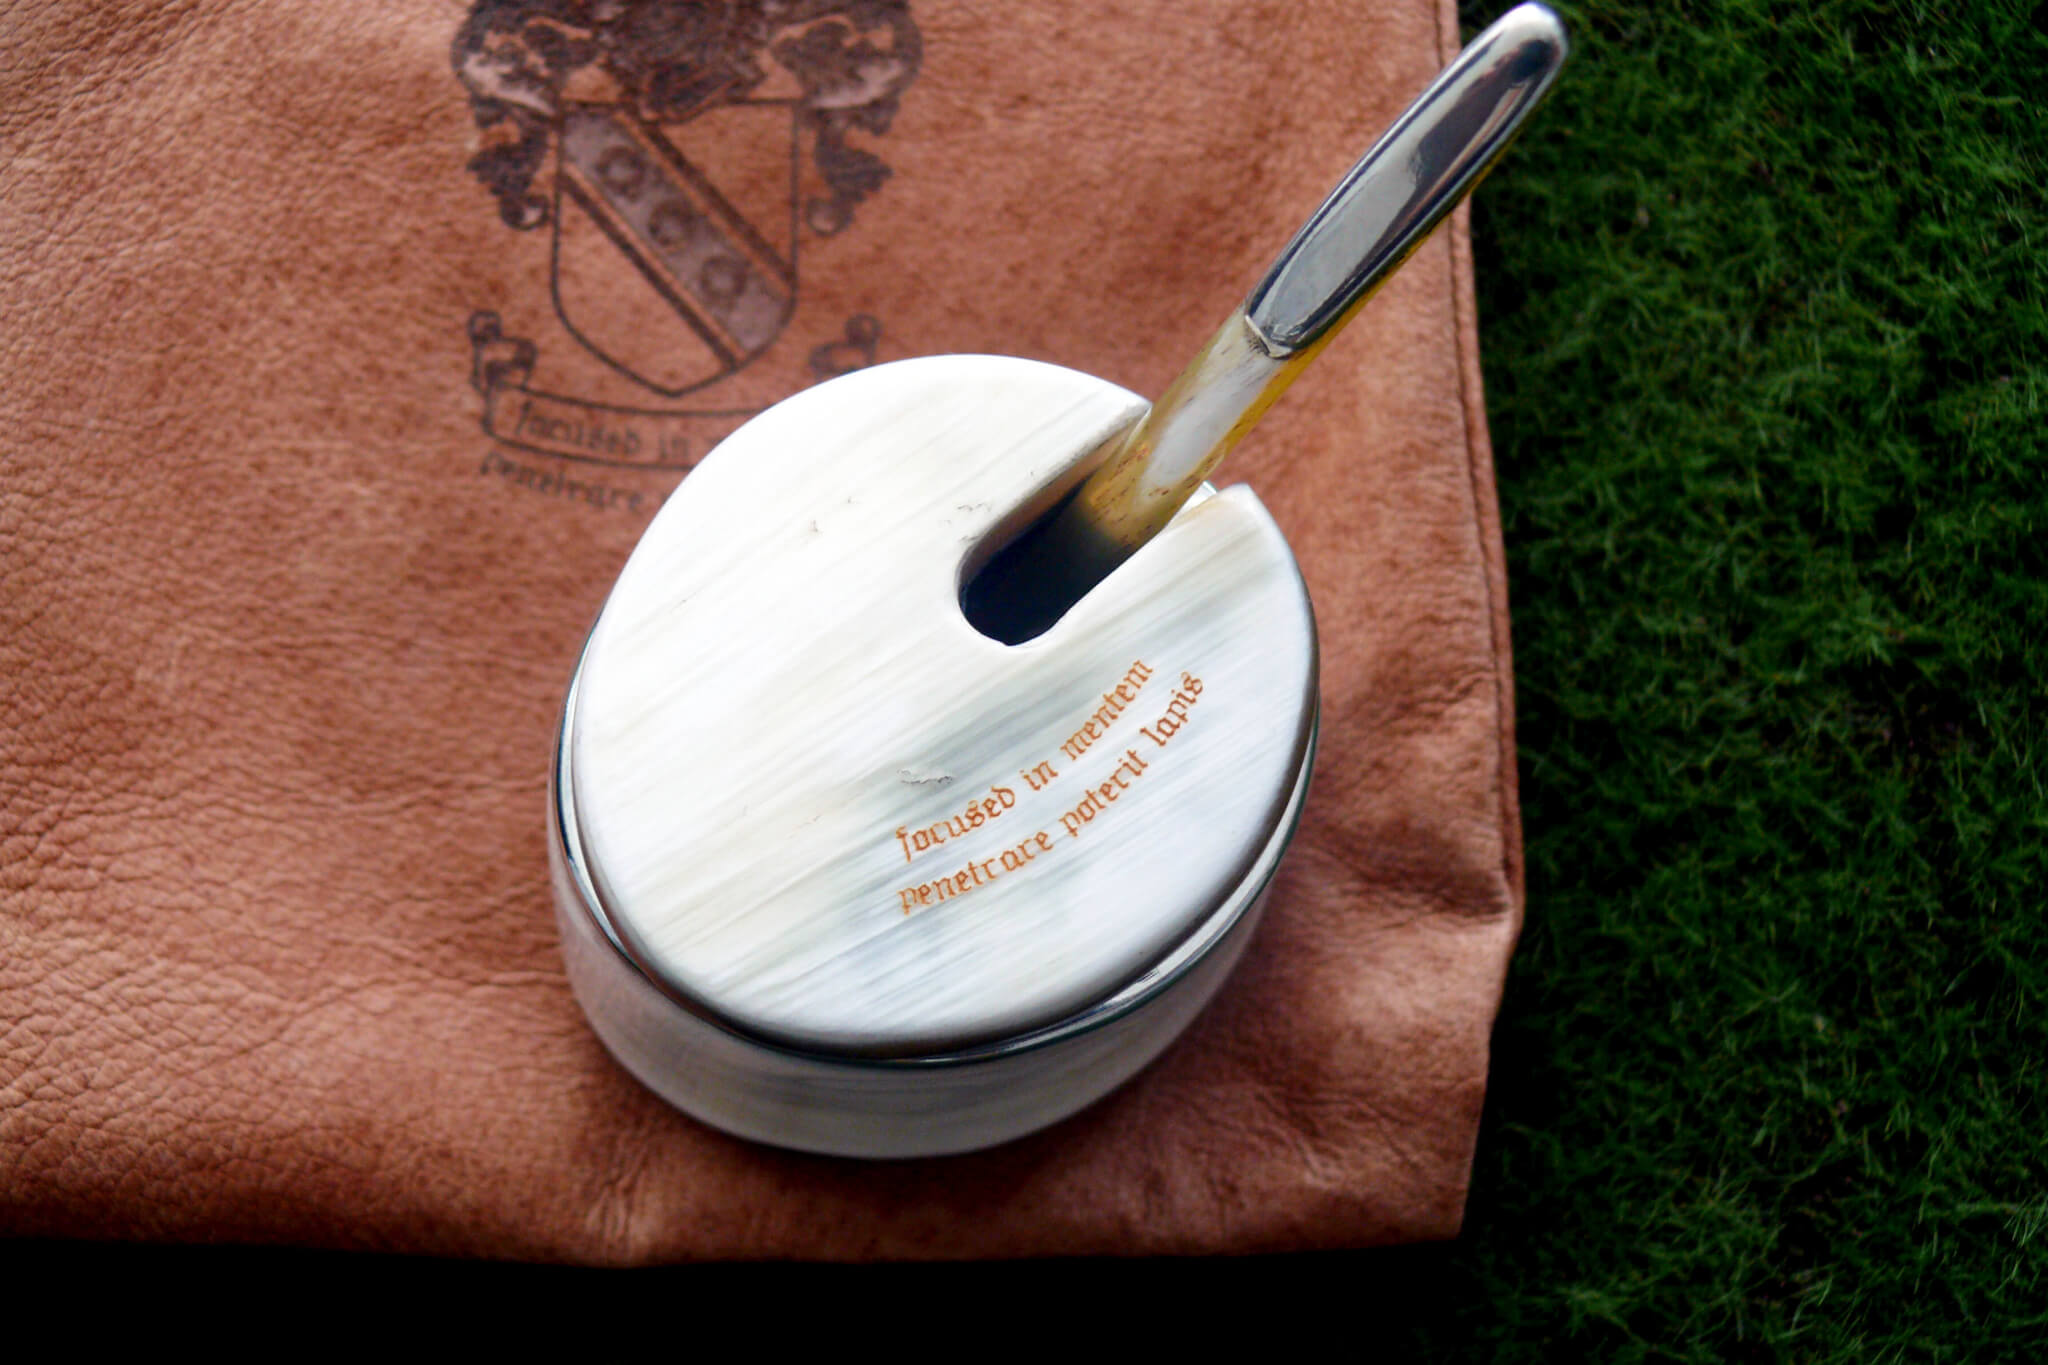 Personalised Gift Idea: Engraved Leather Pouch & Horn Pot